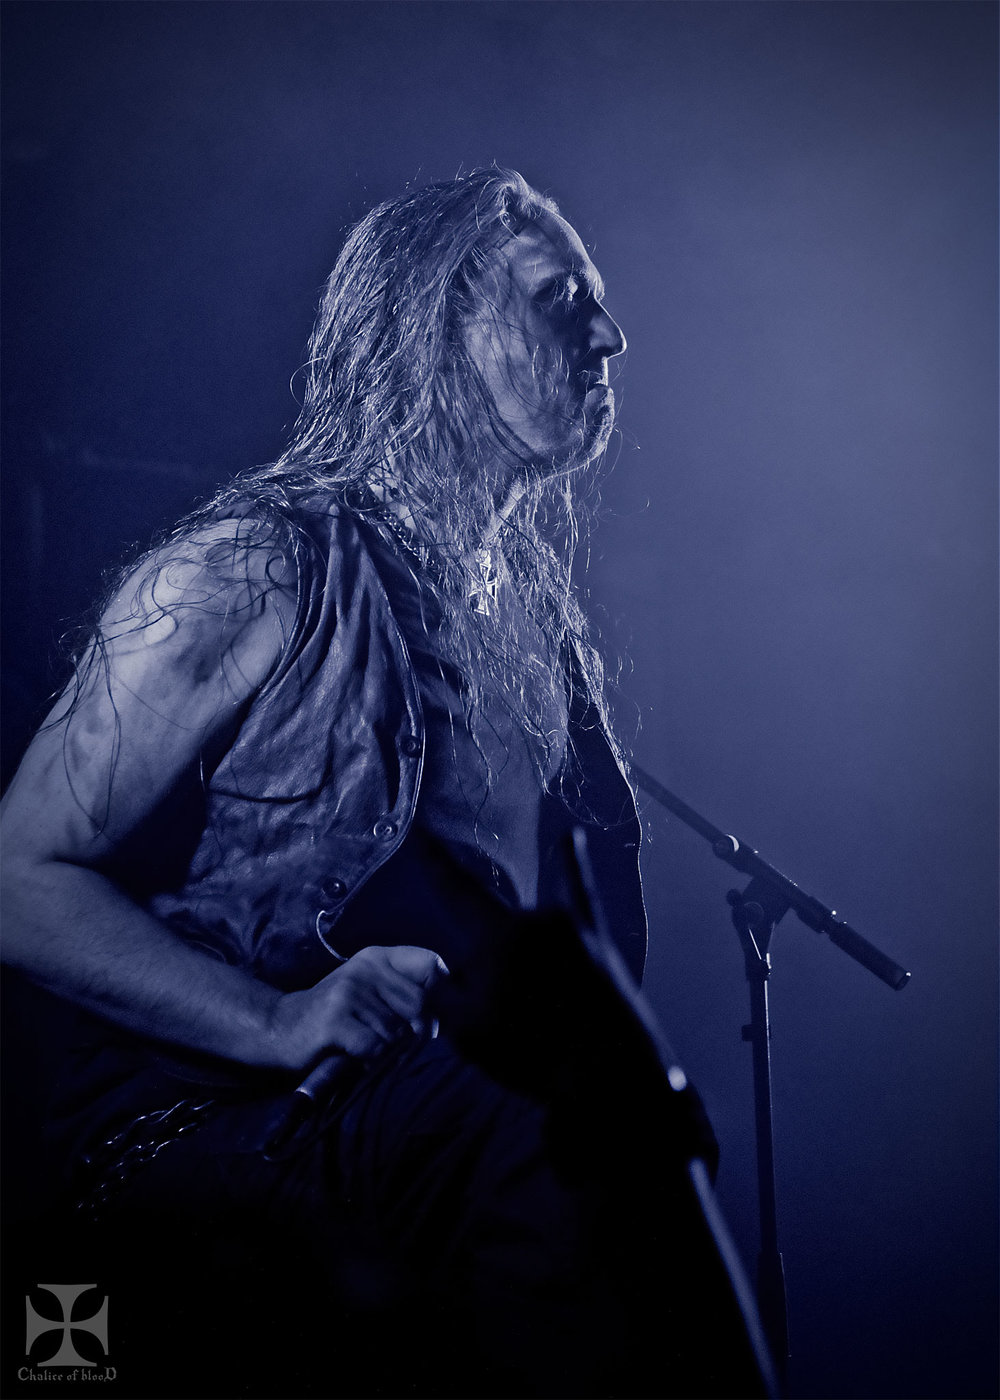 Marduk---55-watermarked.jpg